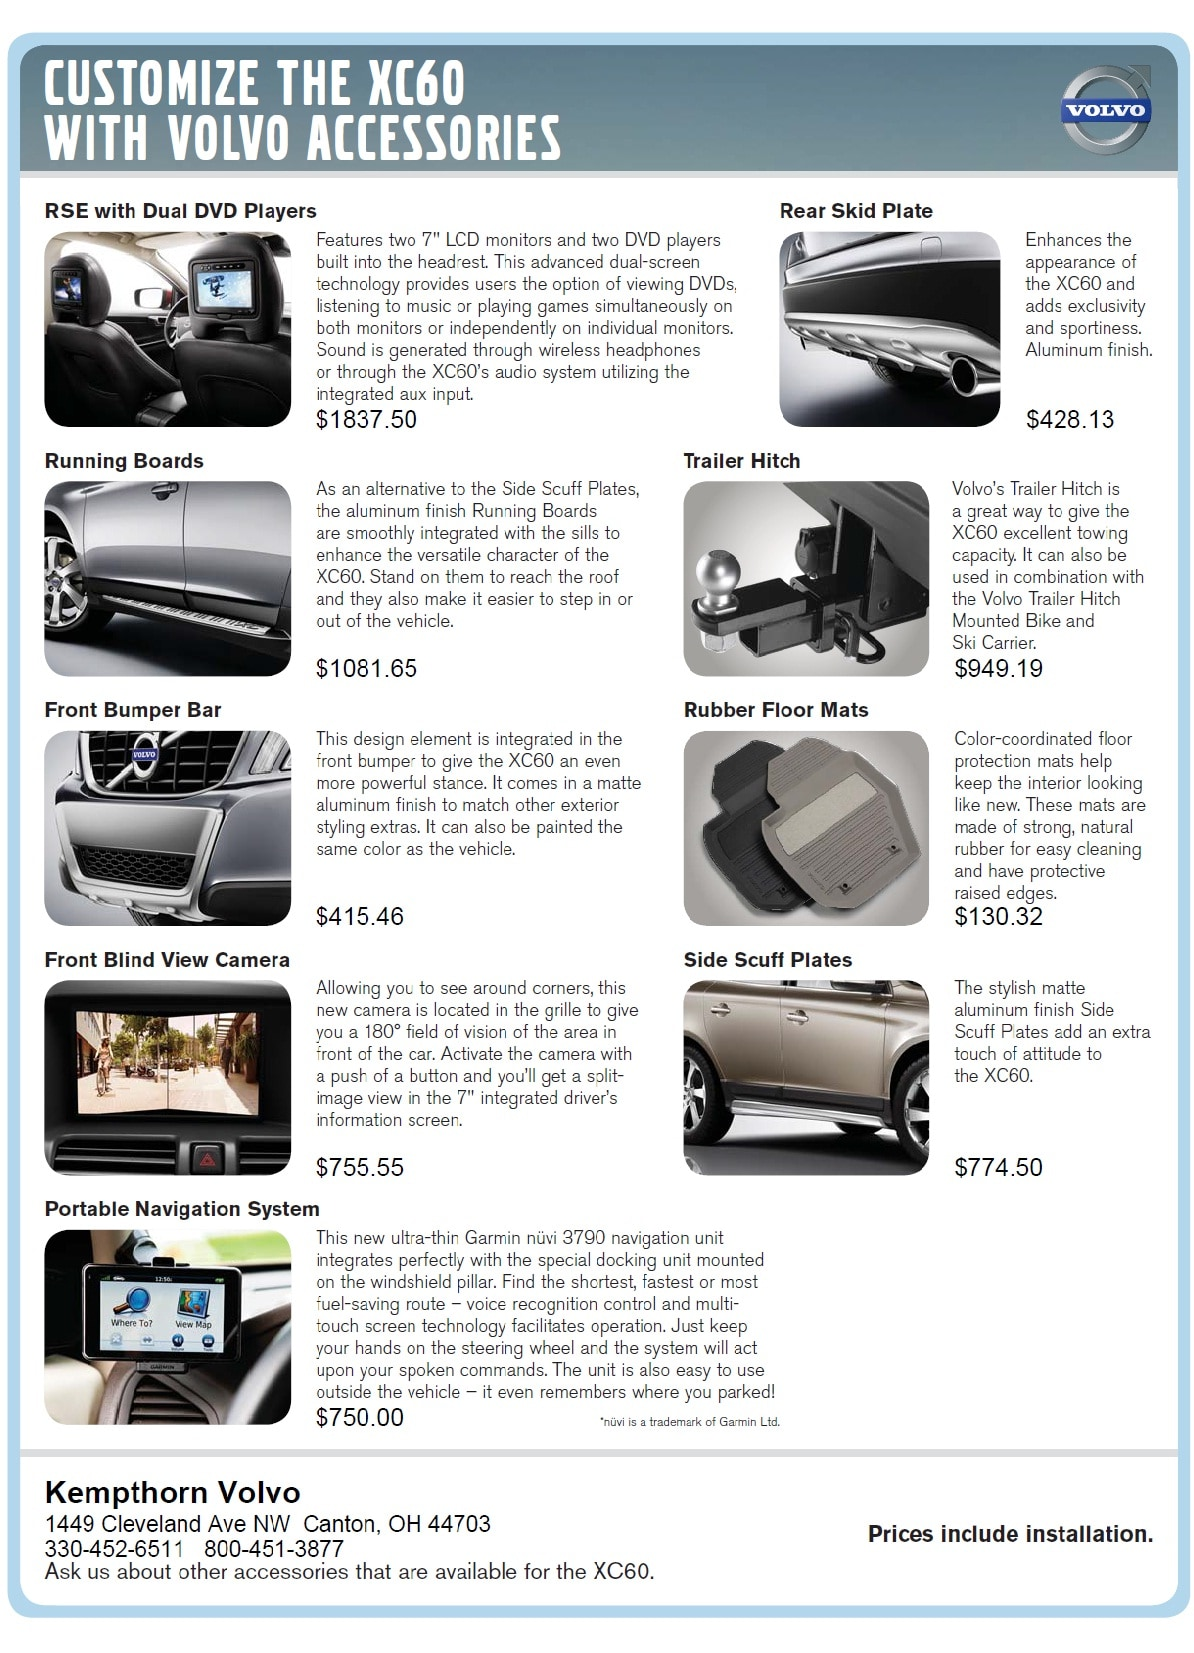 Volvo XC60 Accessories | Kempthorn Volvo Cars